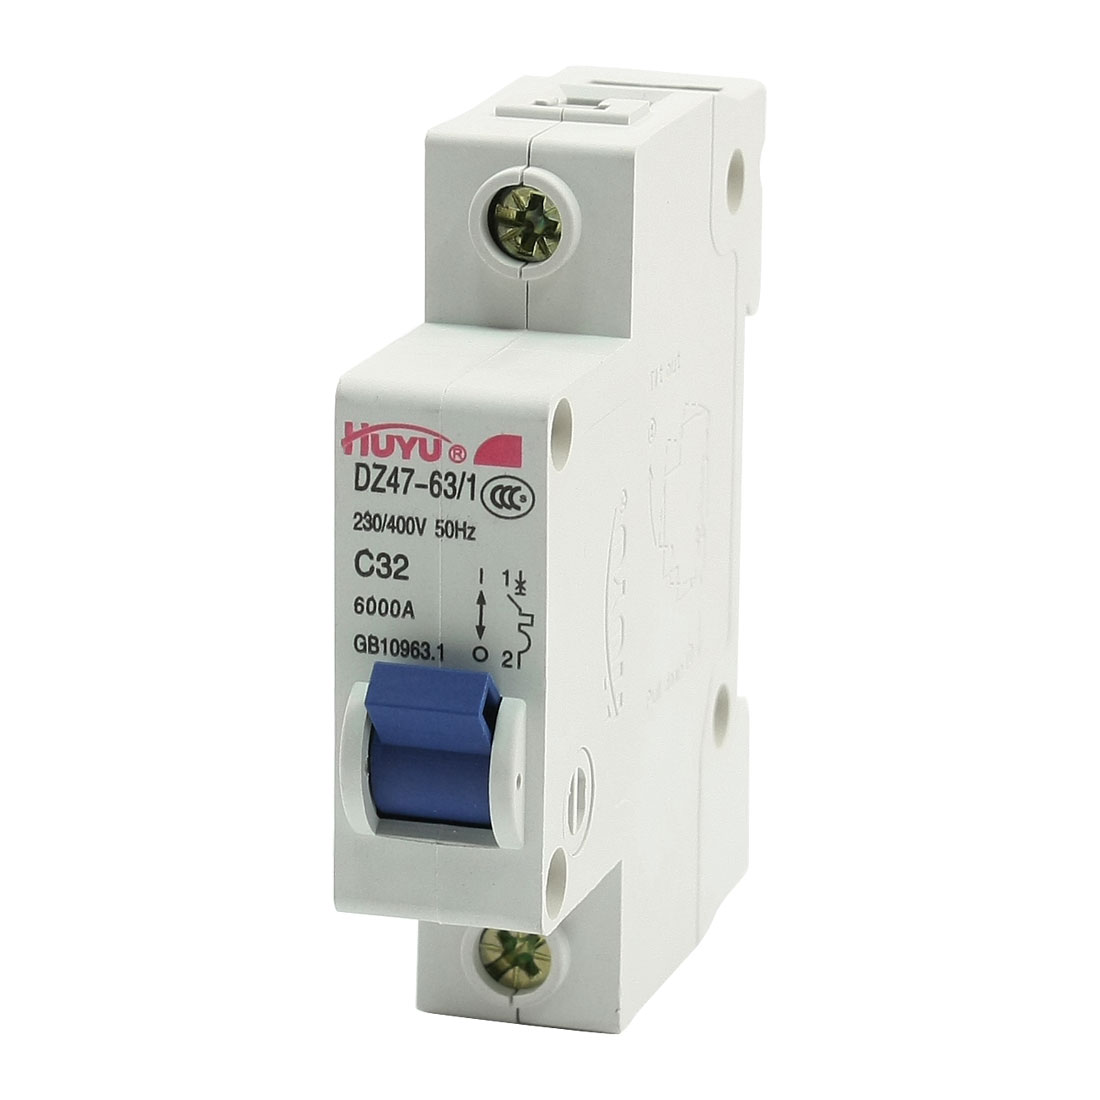 DZ47-63/1 35mm DIN Rail Mounting 32A Industrial Circuit Breaker